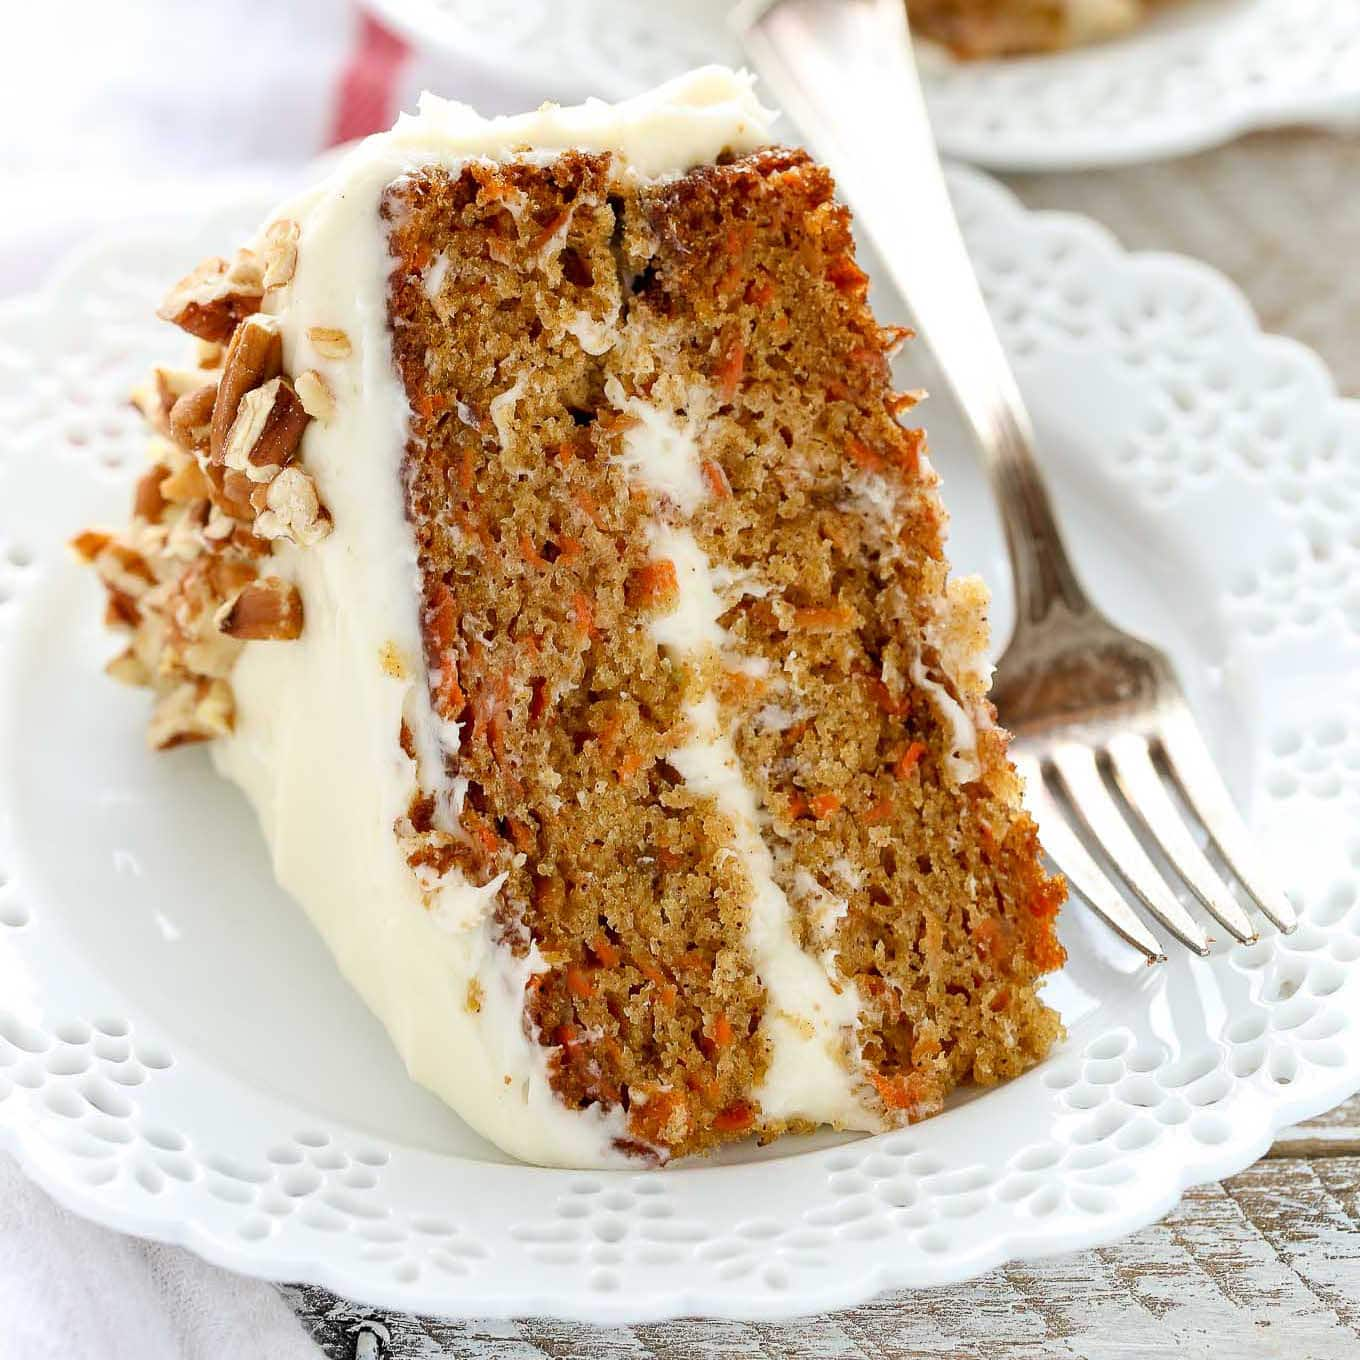 carrot cake recipe from scratch